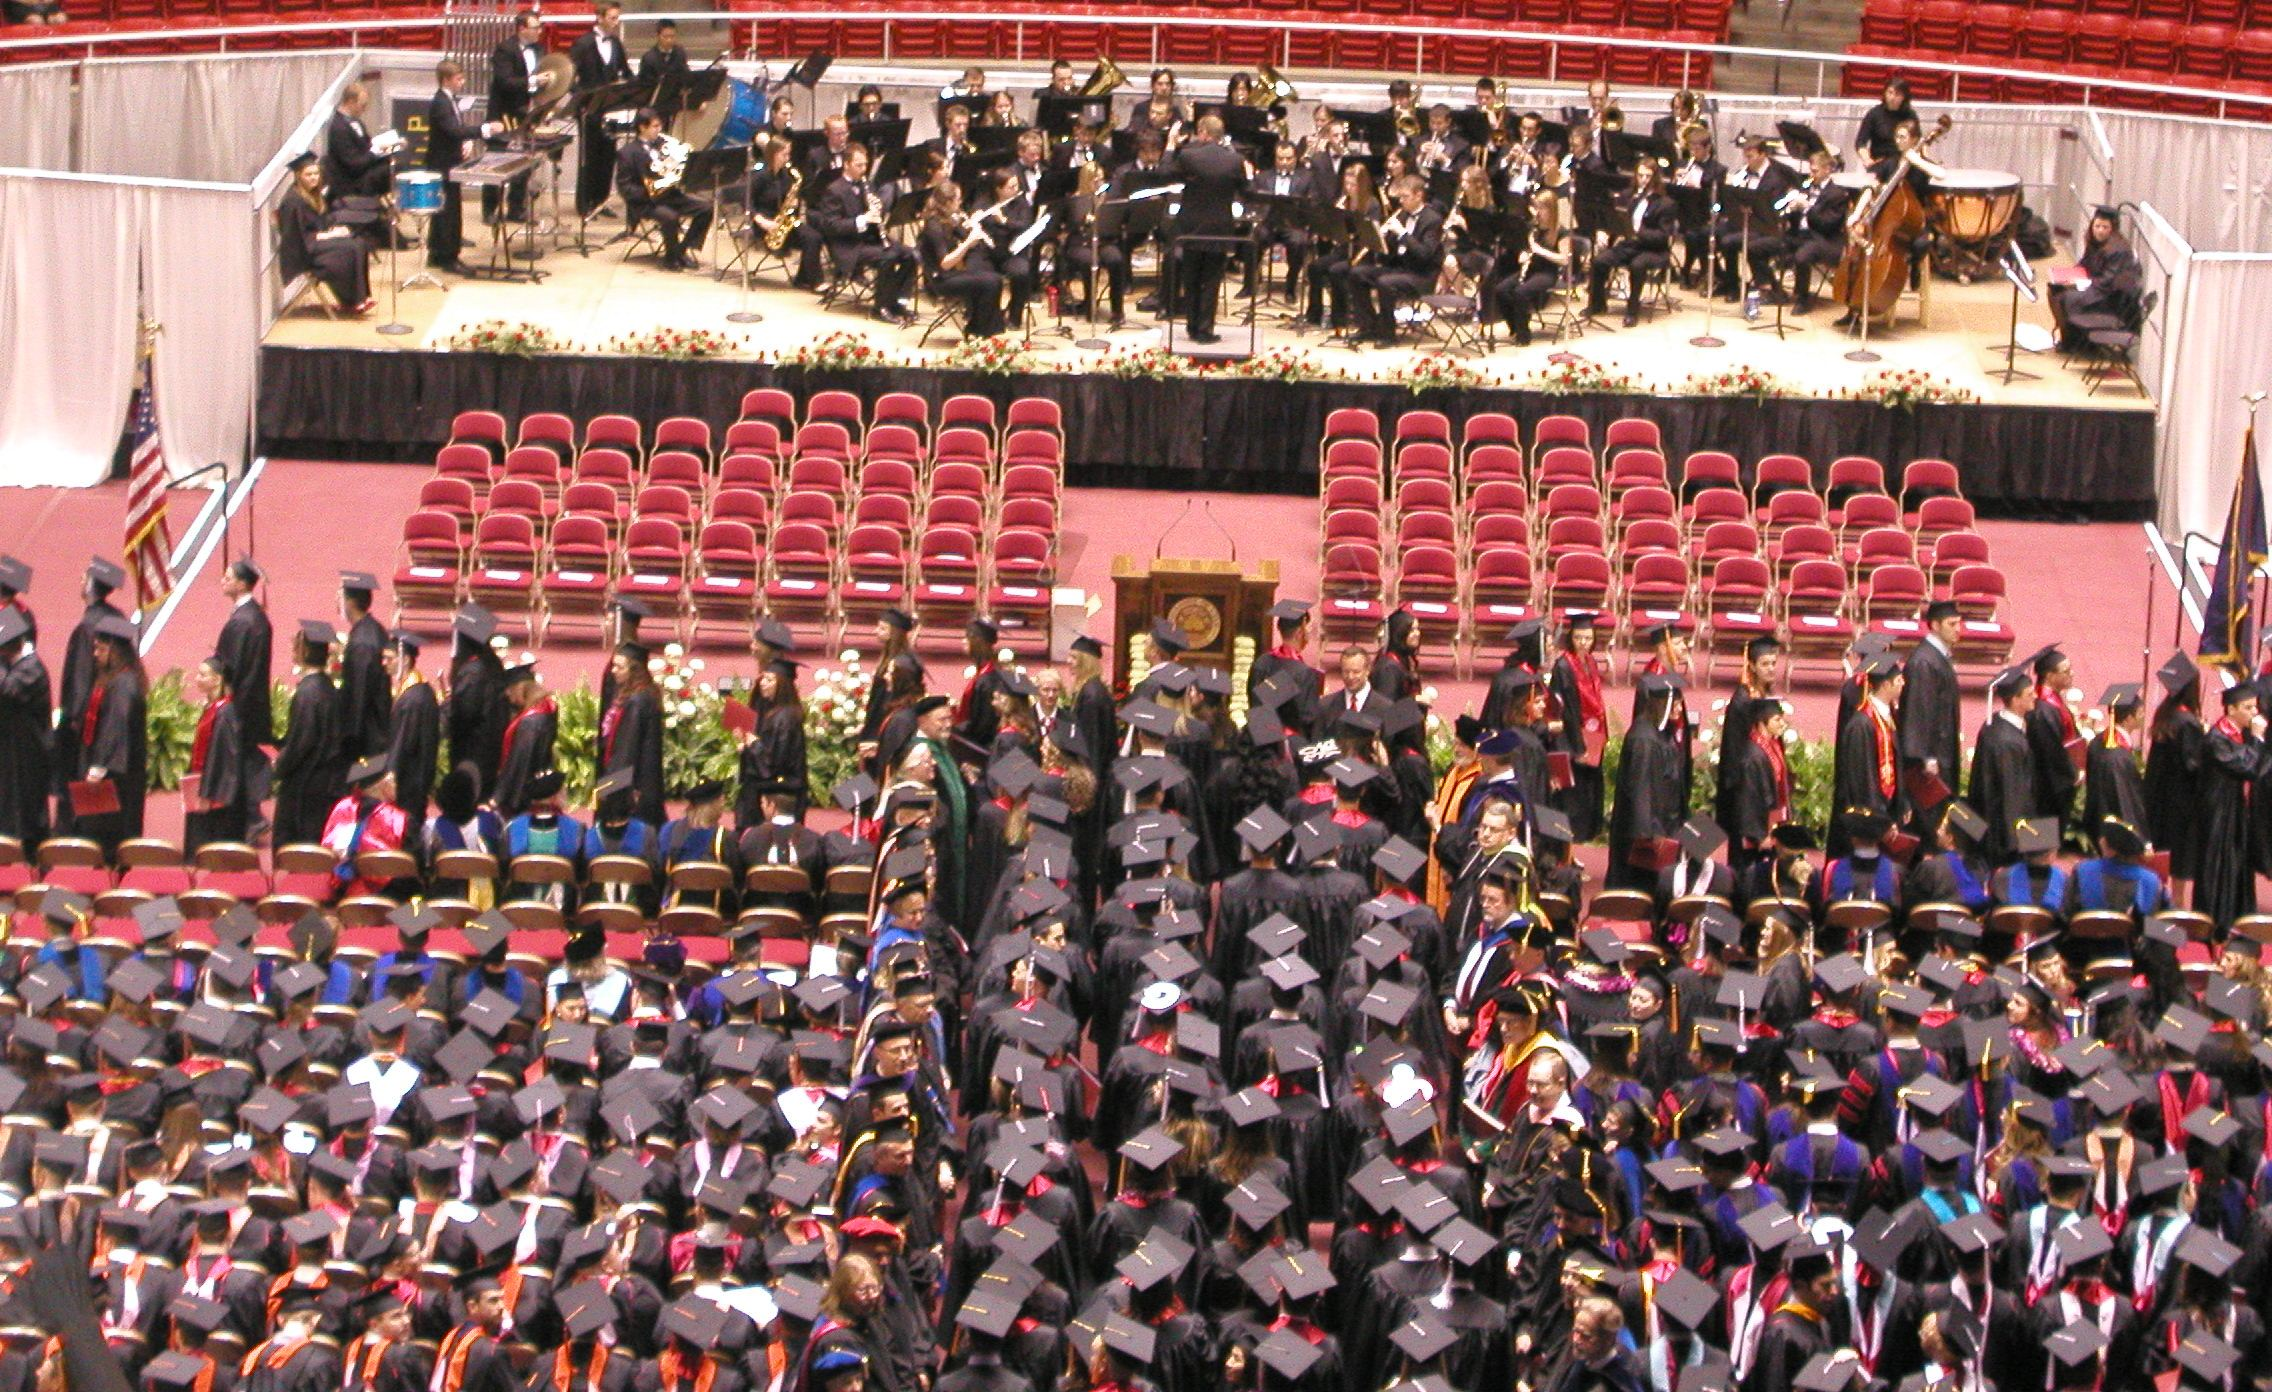 Student procession at 2010 U of U commencement ceremony. The U will confer over 8,000 degrees at this year's commencement, scheduled for May 6, 2011.